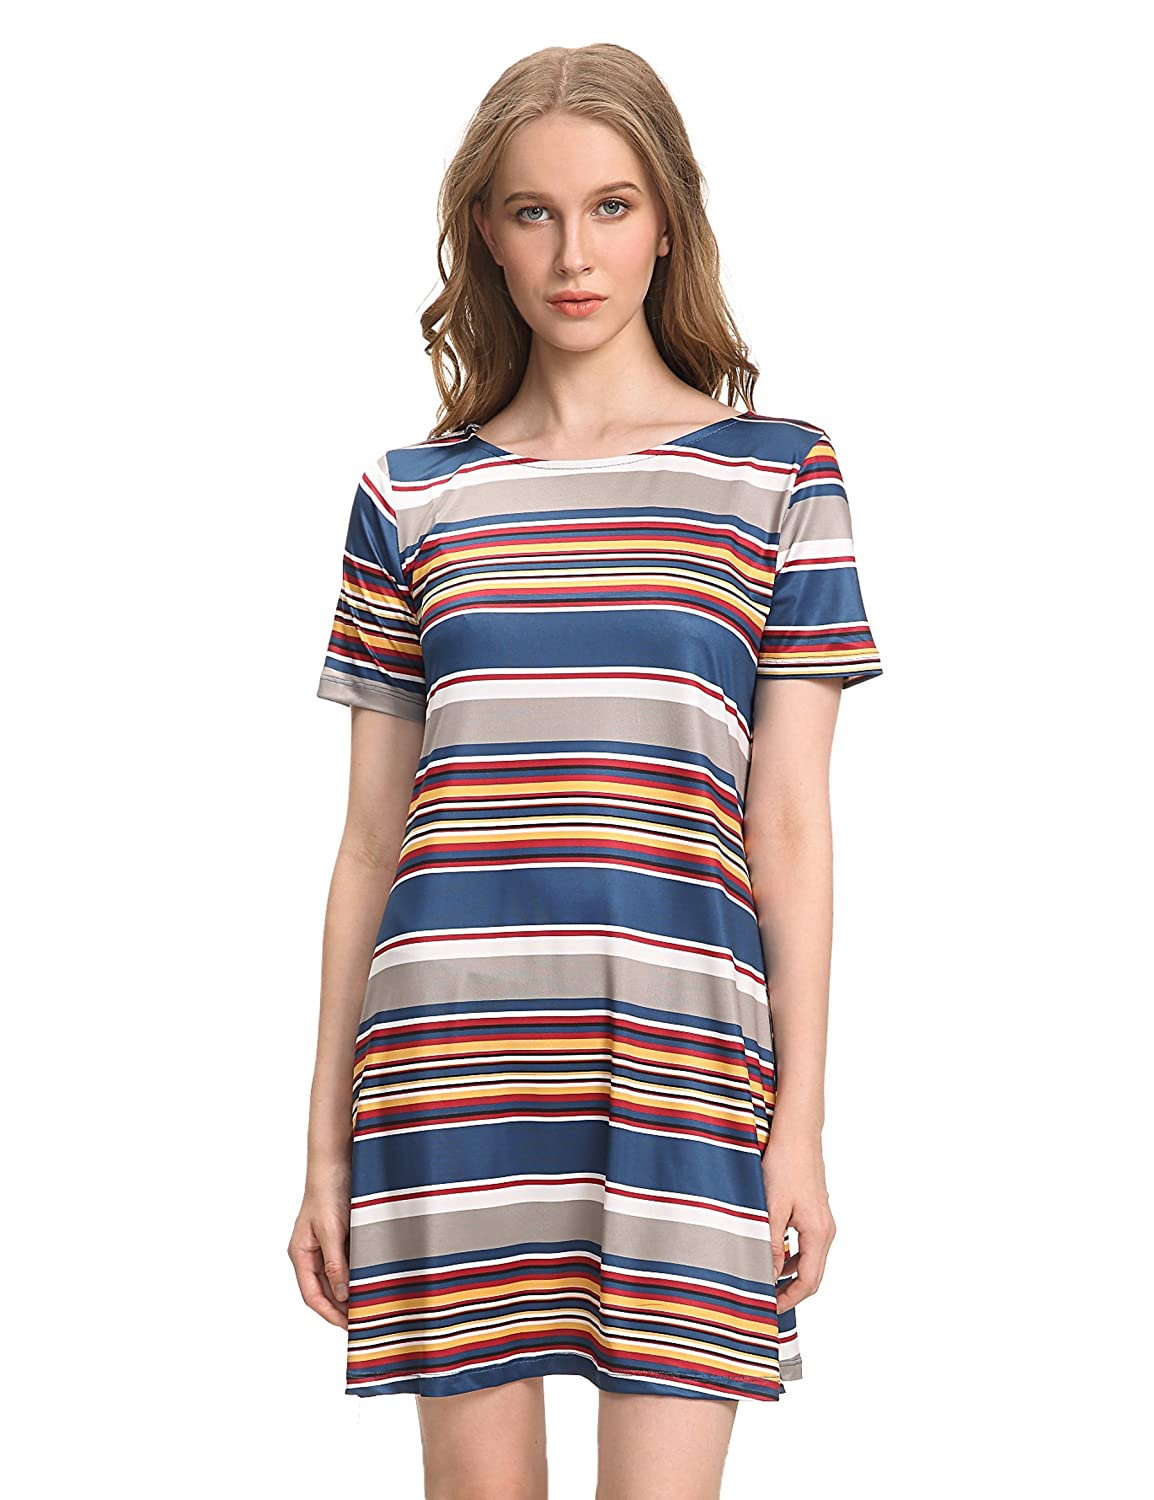 f38a21c69e47 OEUVRE Women's Tunic Stripe Pattern Jersey Knee Length Shift Casual Dress  at Amazon Women's Clothing store: